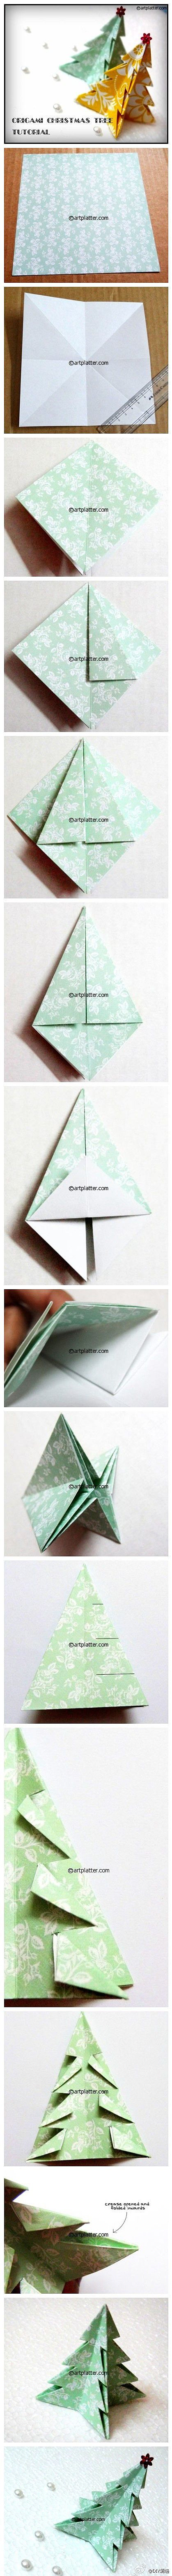 How to's : Origami Christmas Tree